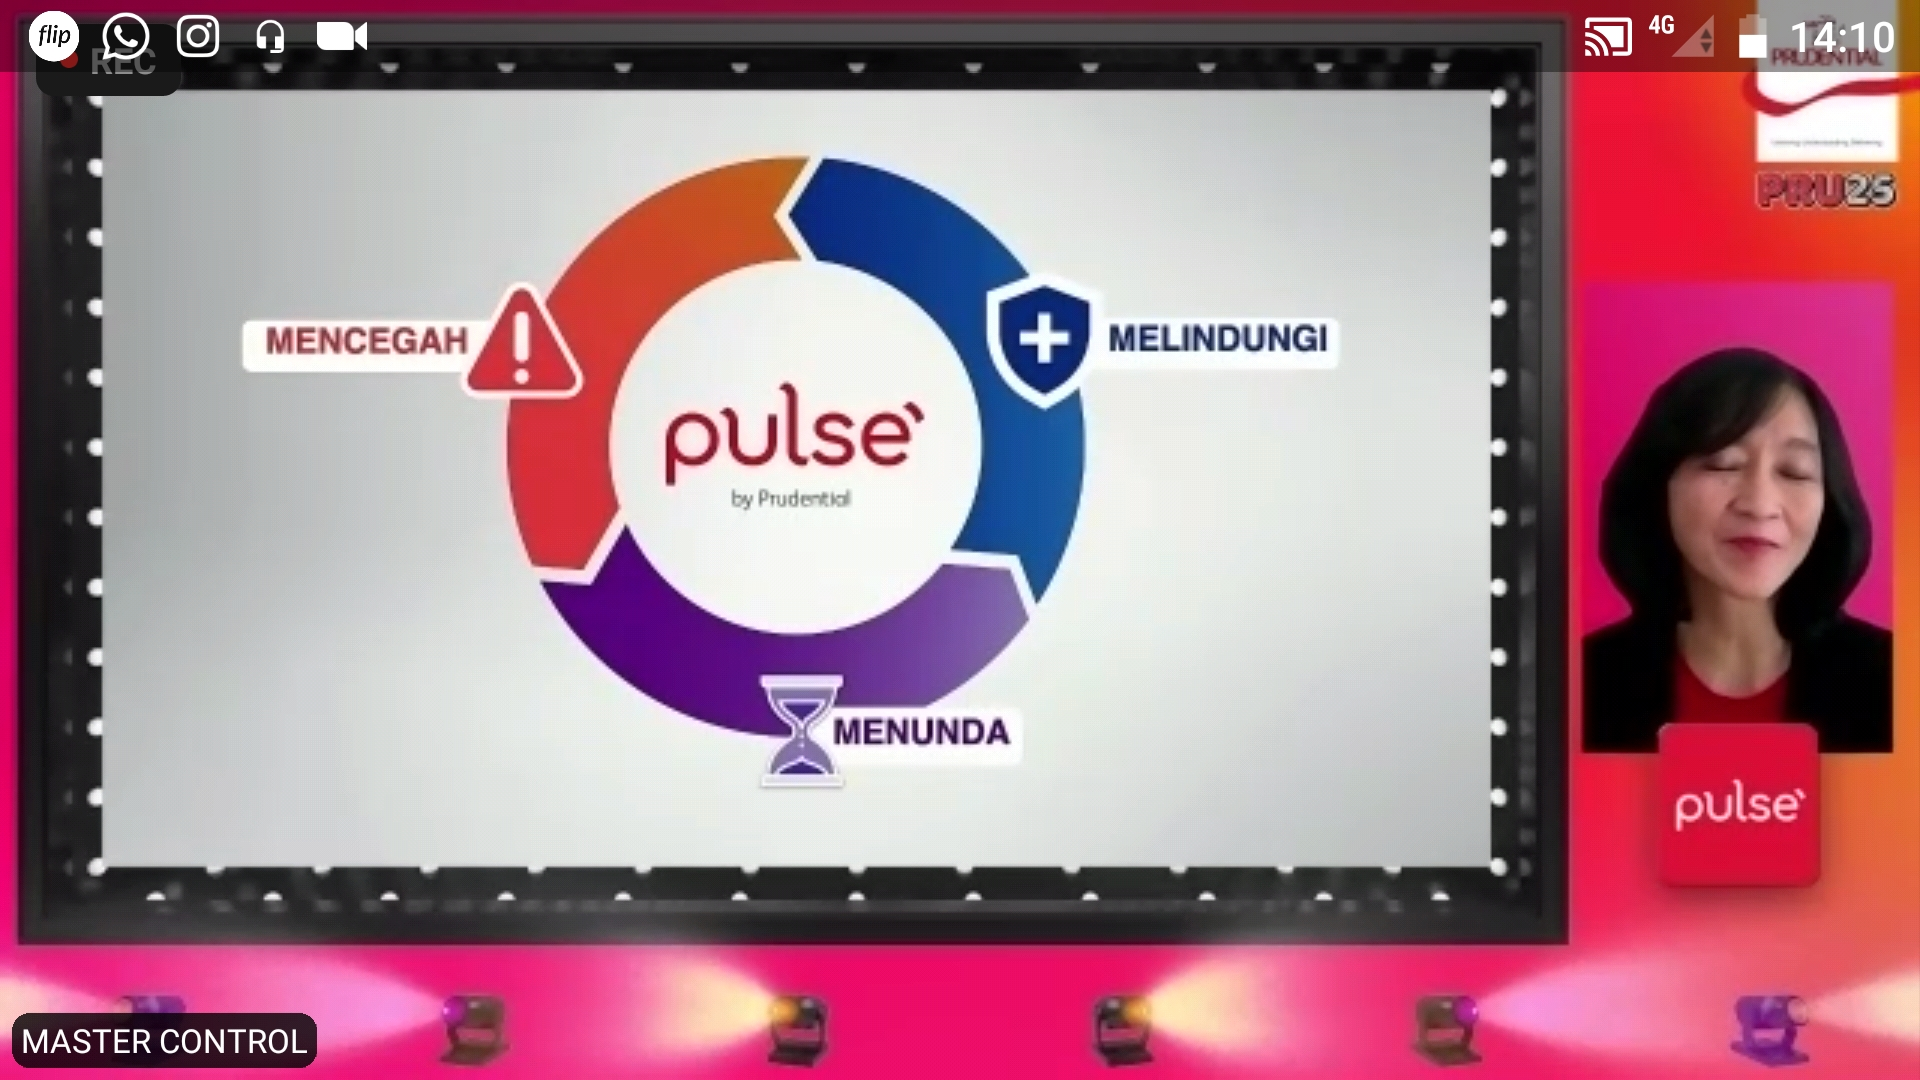 pulse by prudential 4